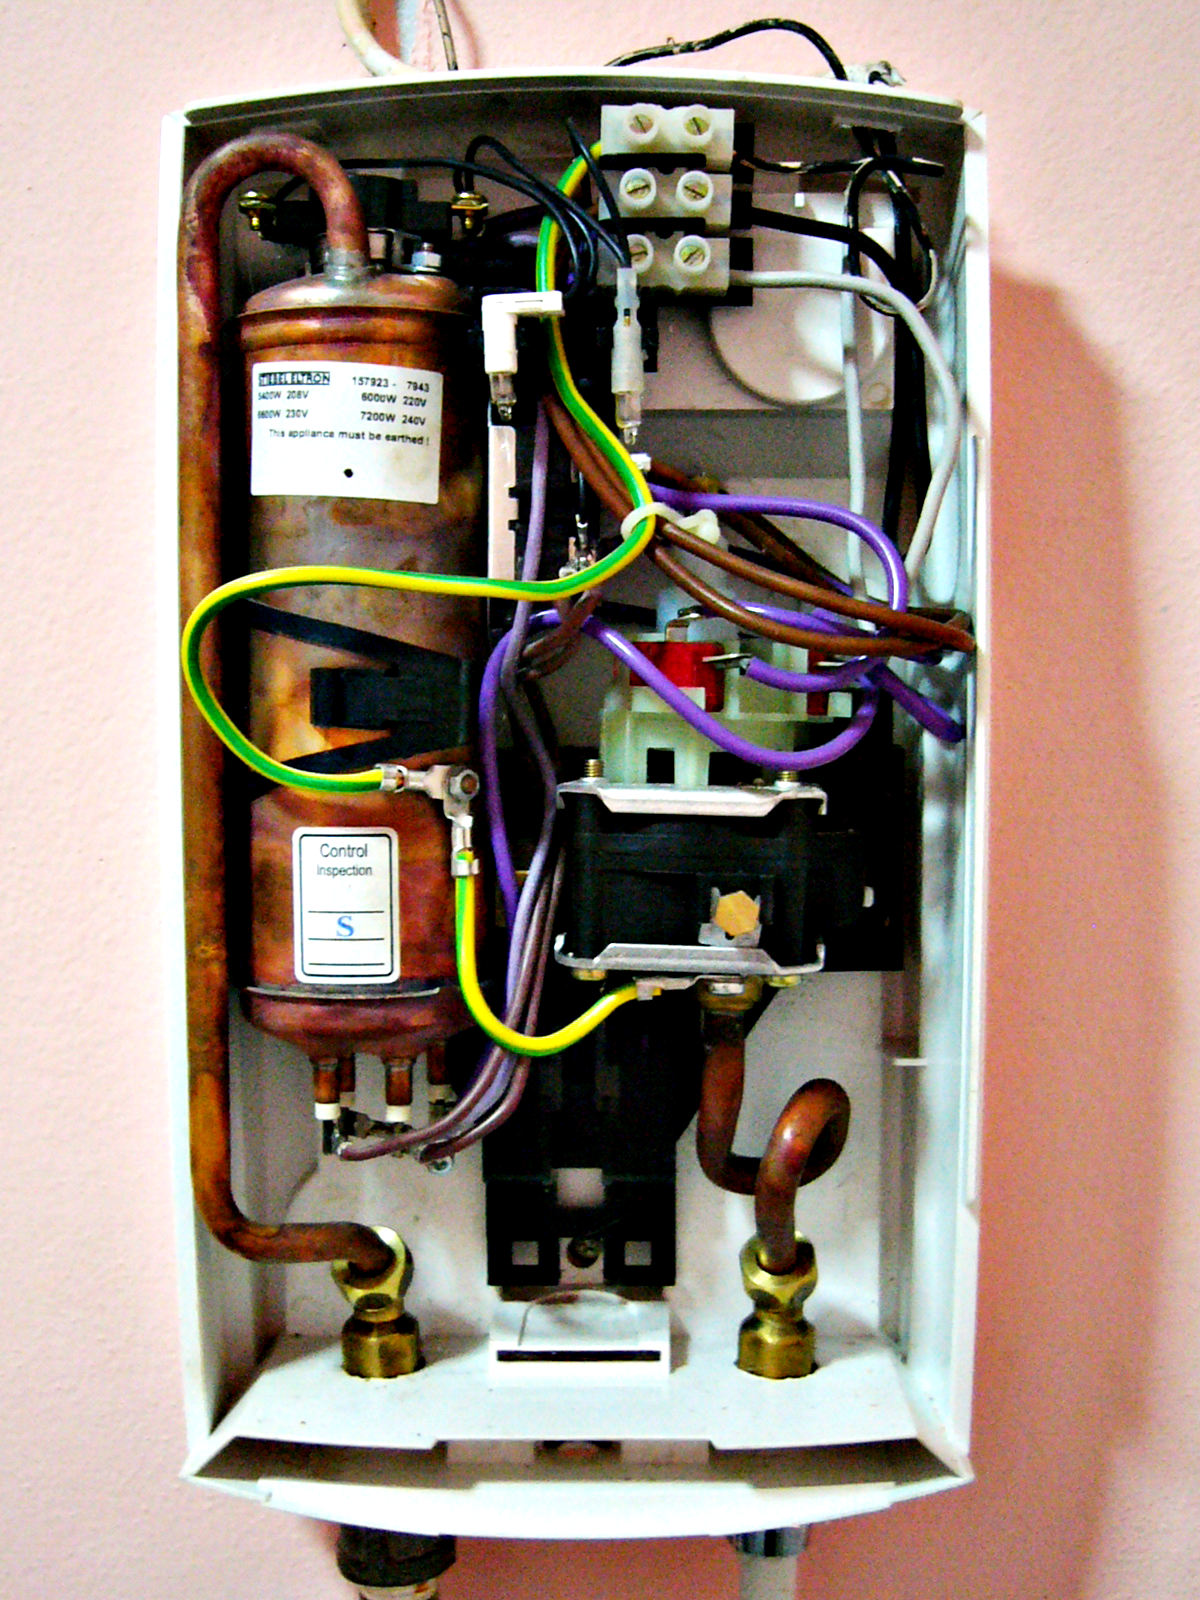 The inside of a hydraulically operated two-stage tankless heater, heated by single-phase electric power.